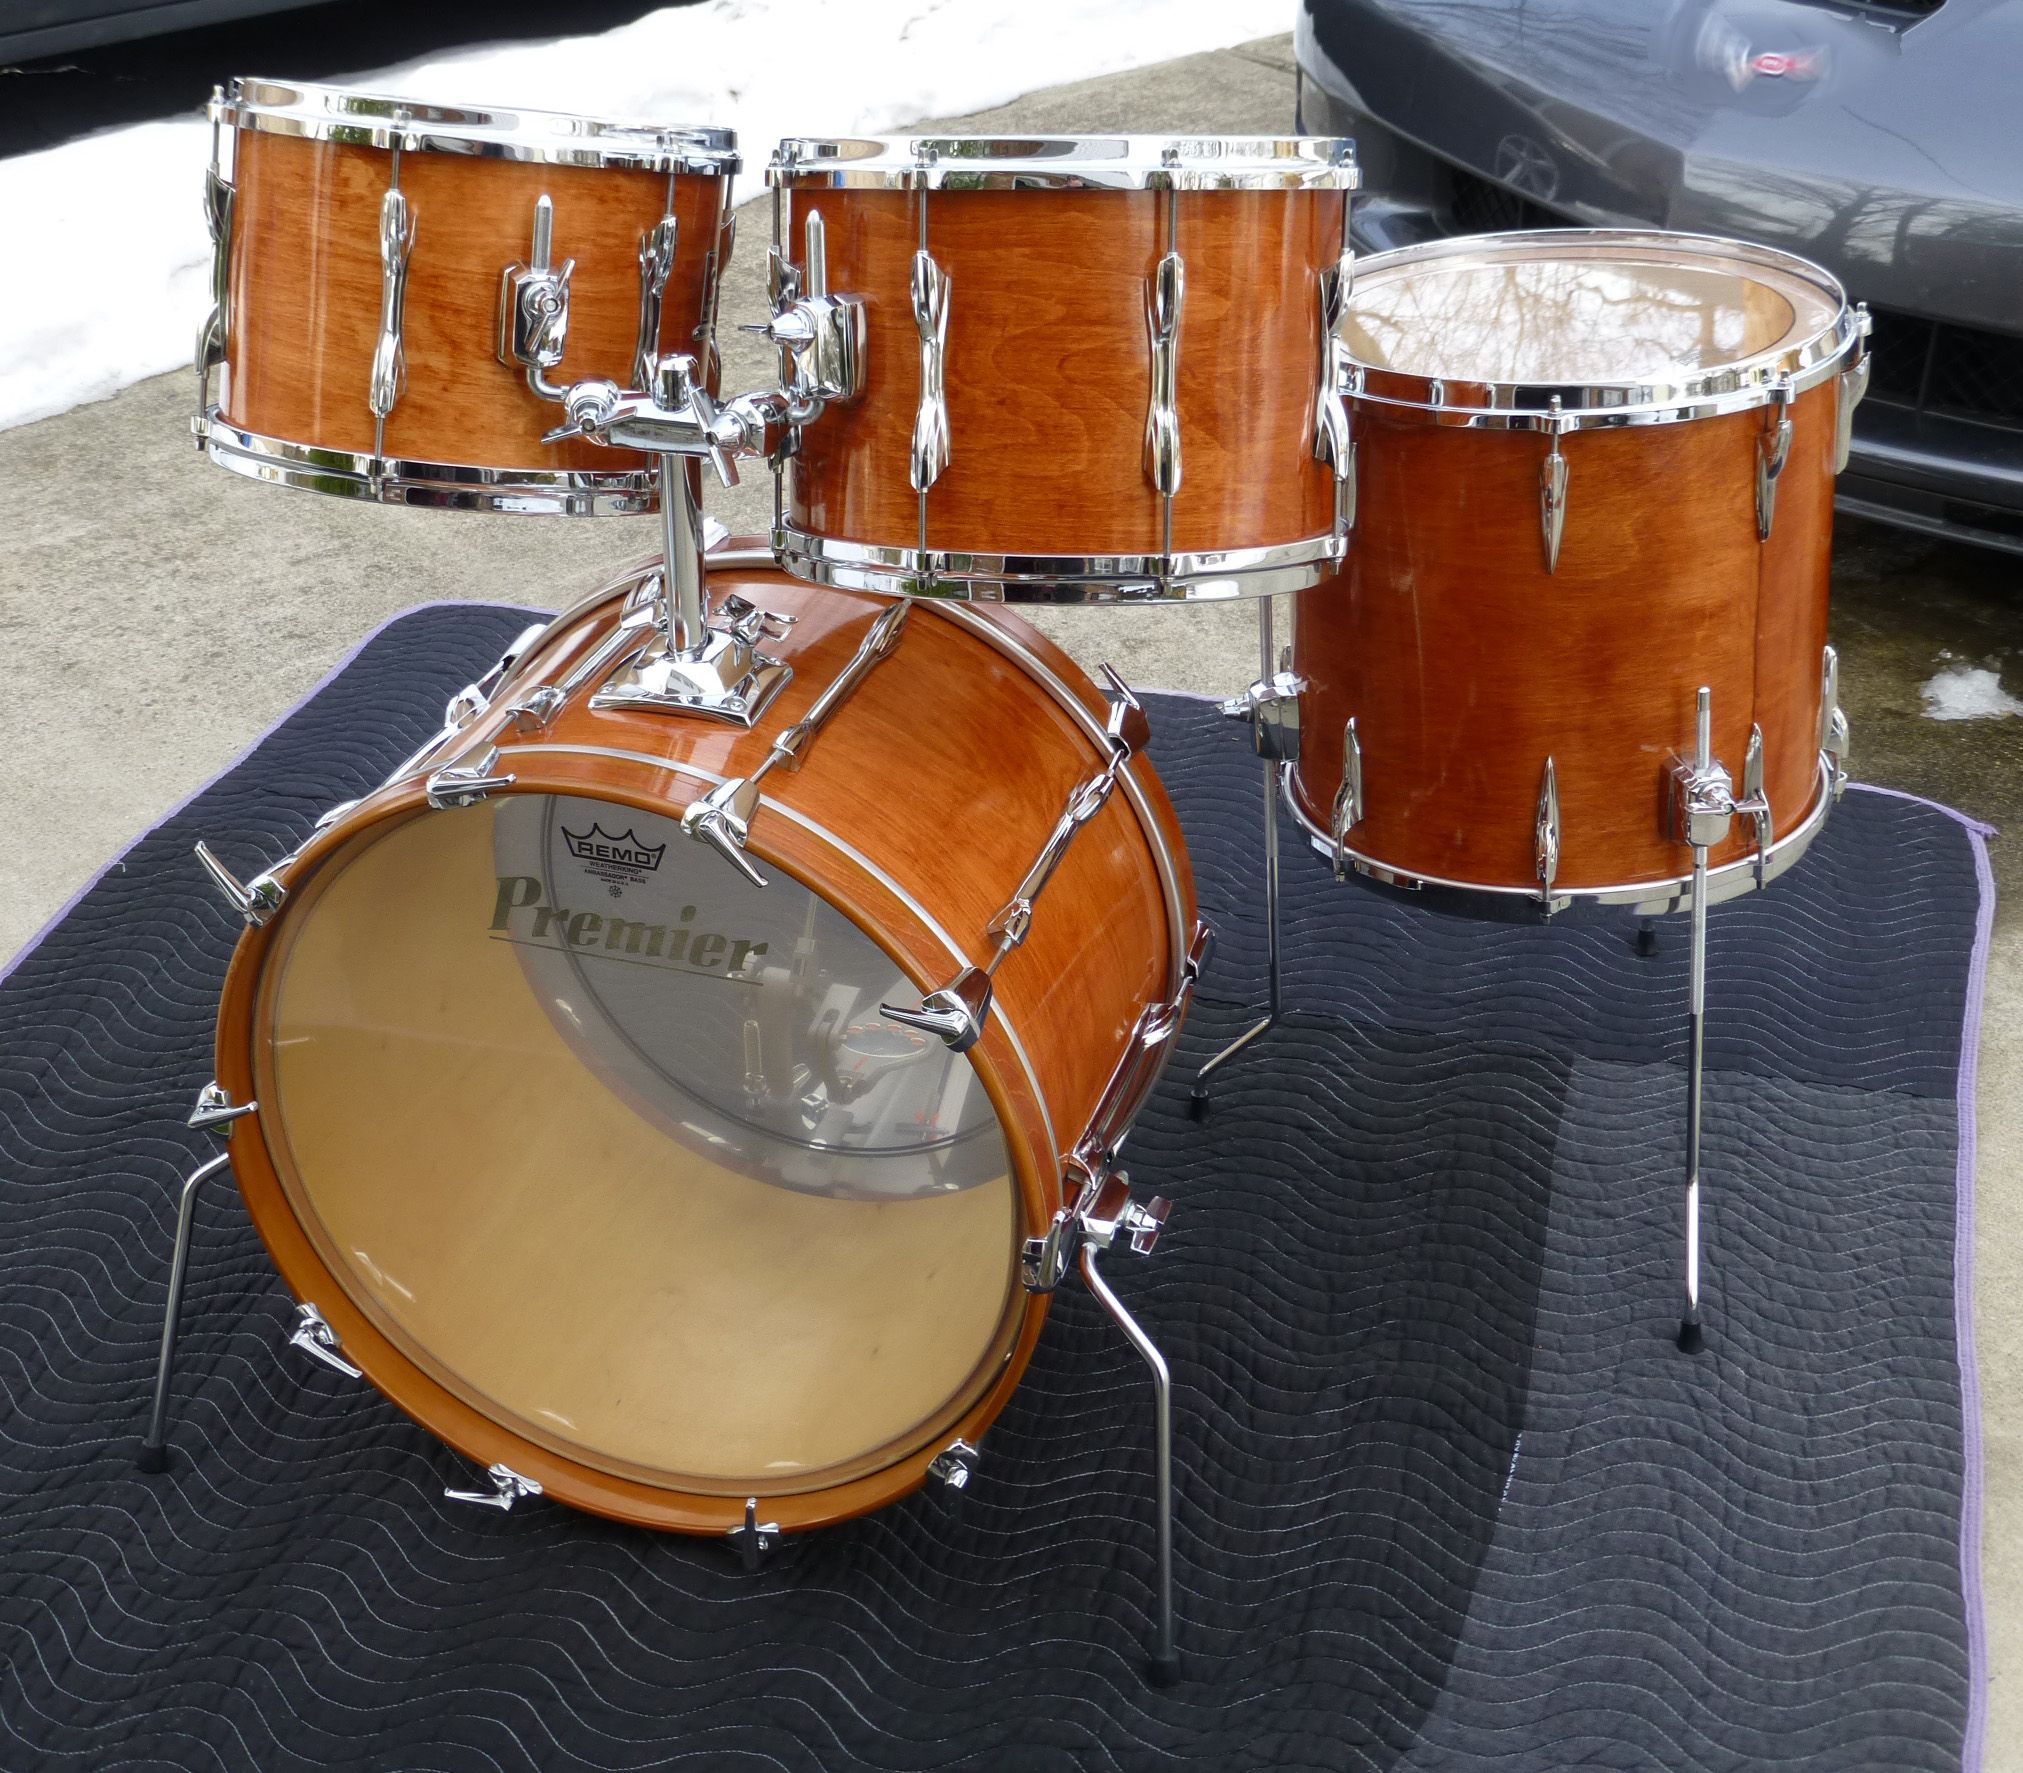 late 70s era premier resonator drums i also own a set of these drums in clear lacquer finish. Black Bedroom Furniture Sets. Home Design Ideas